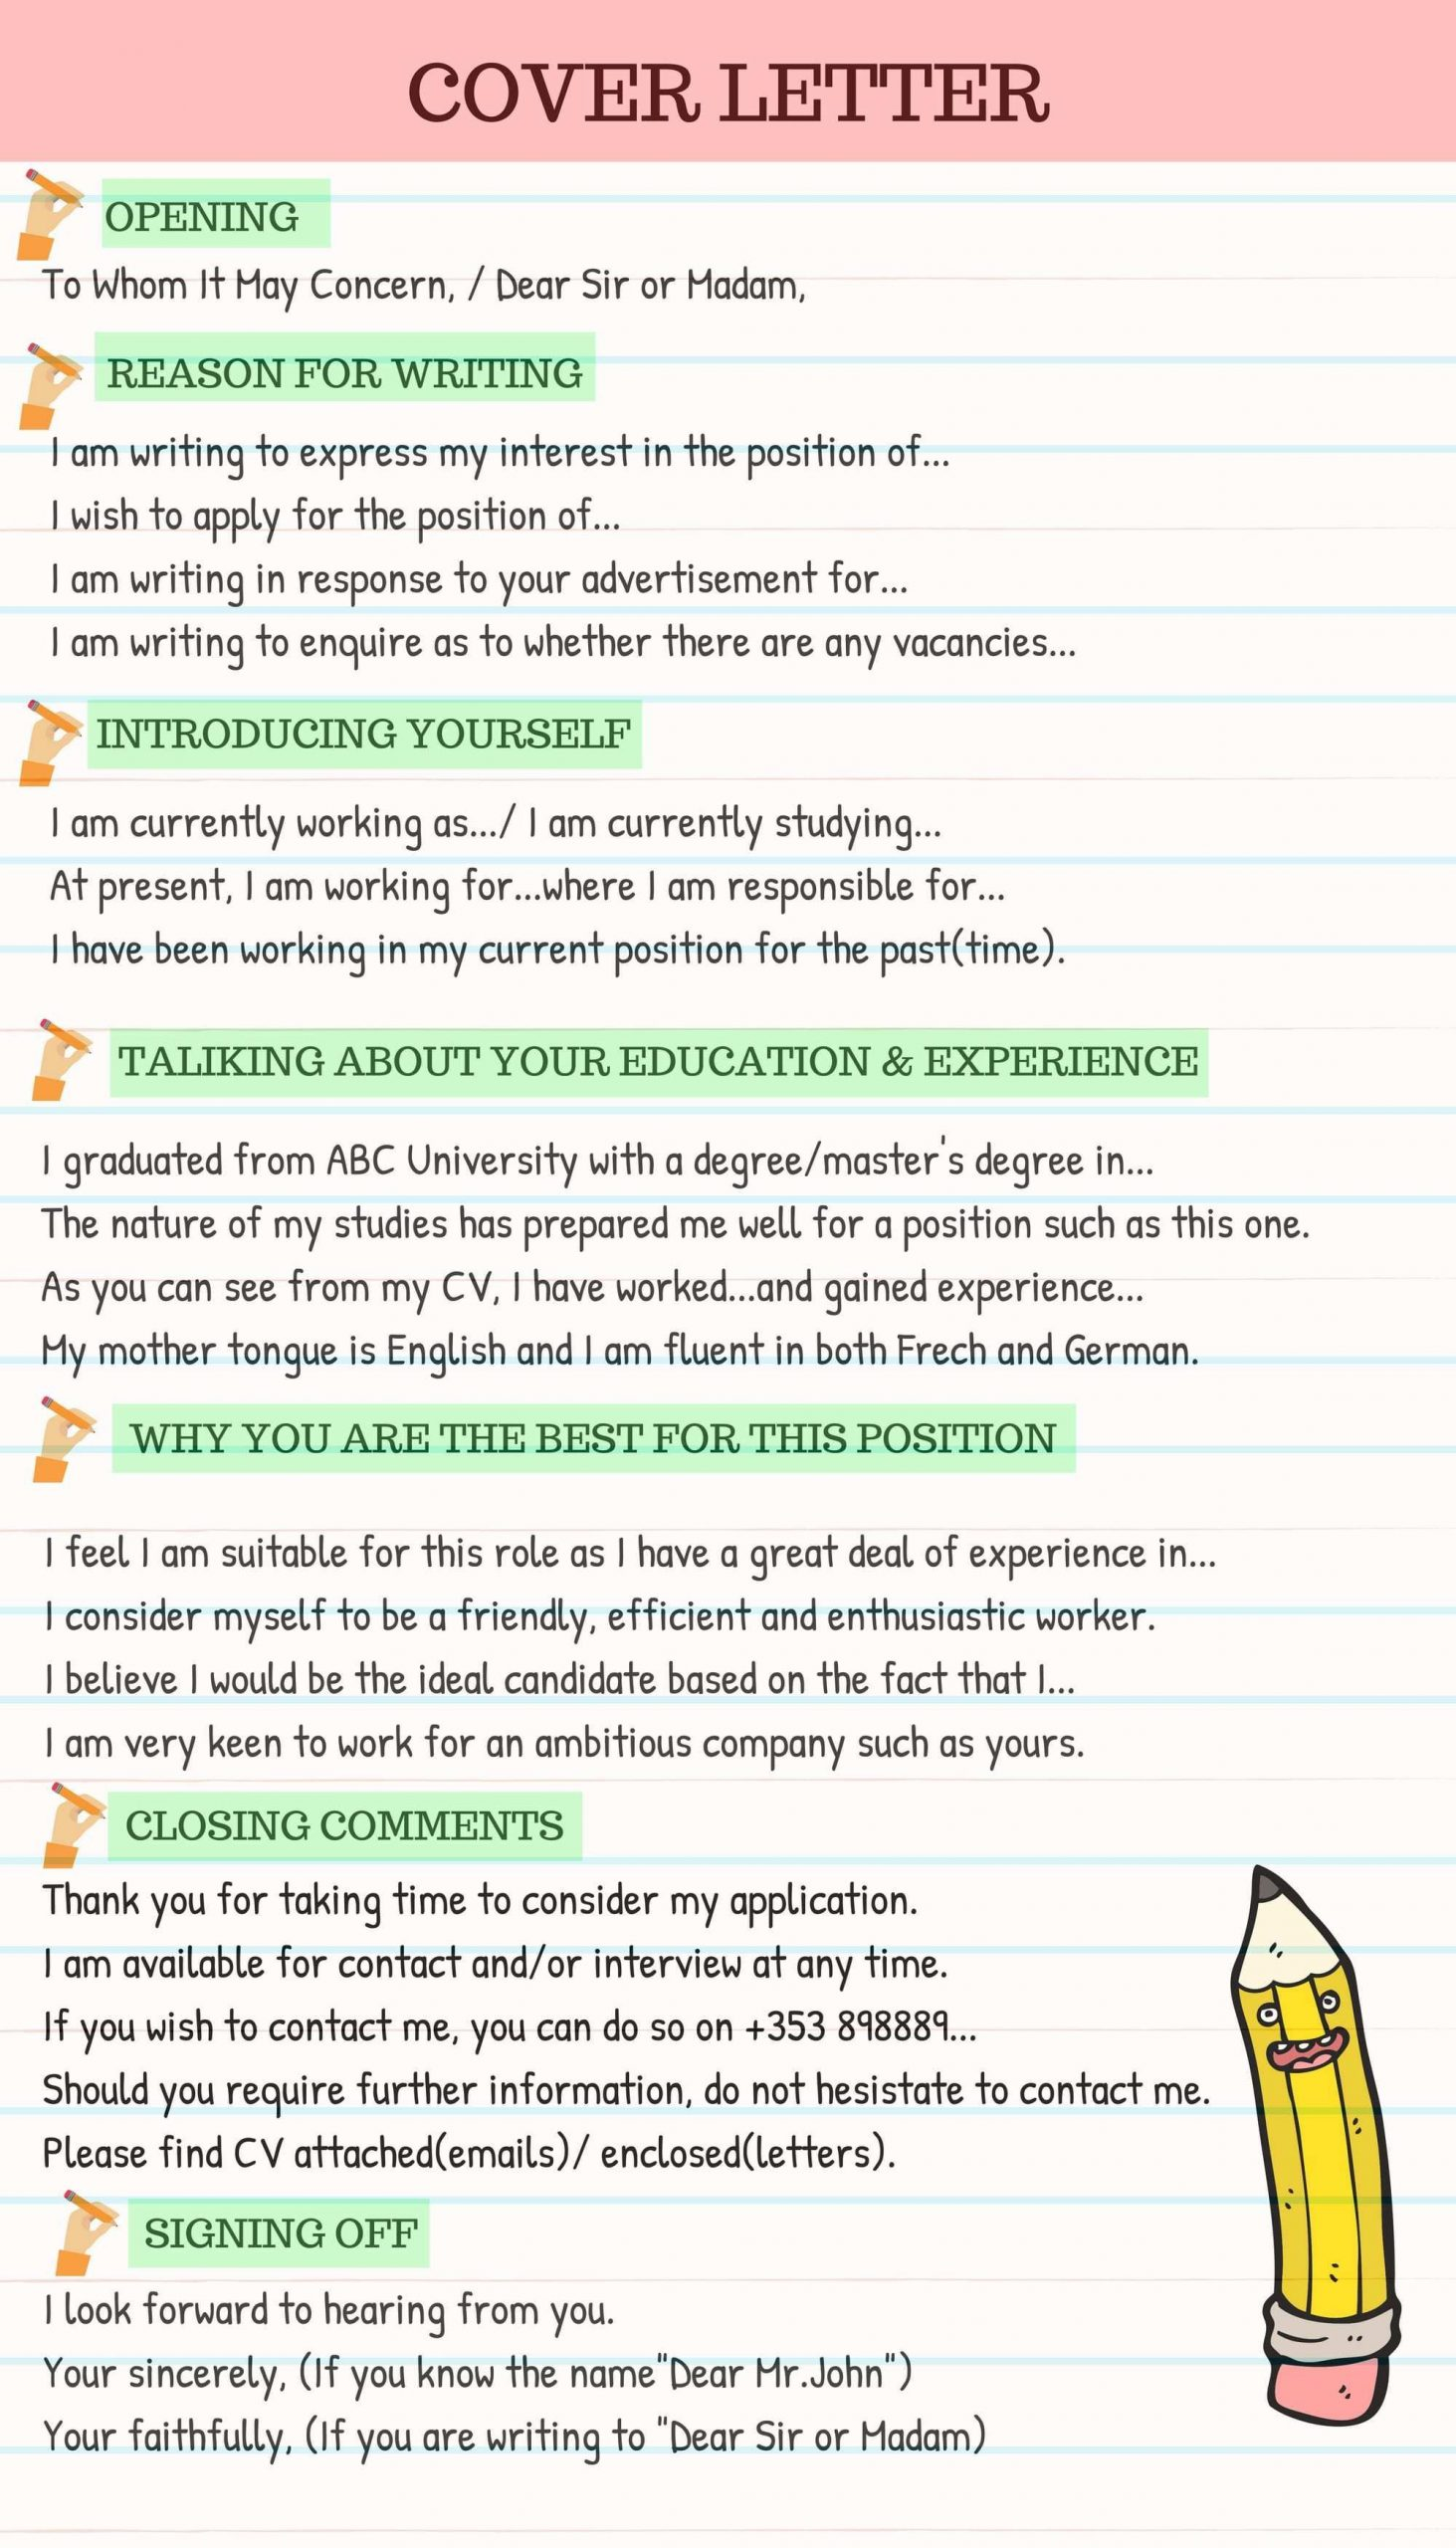 How to Write a Cover Letter Effectively ESLBuzz Learning English